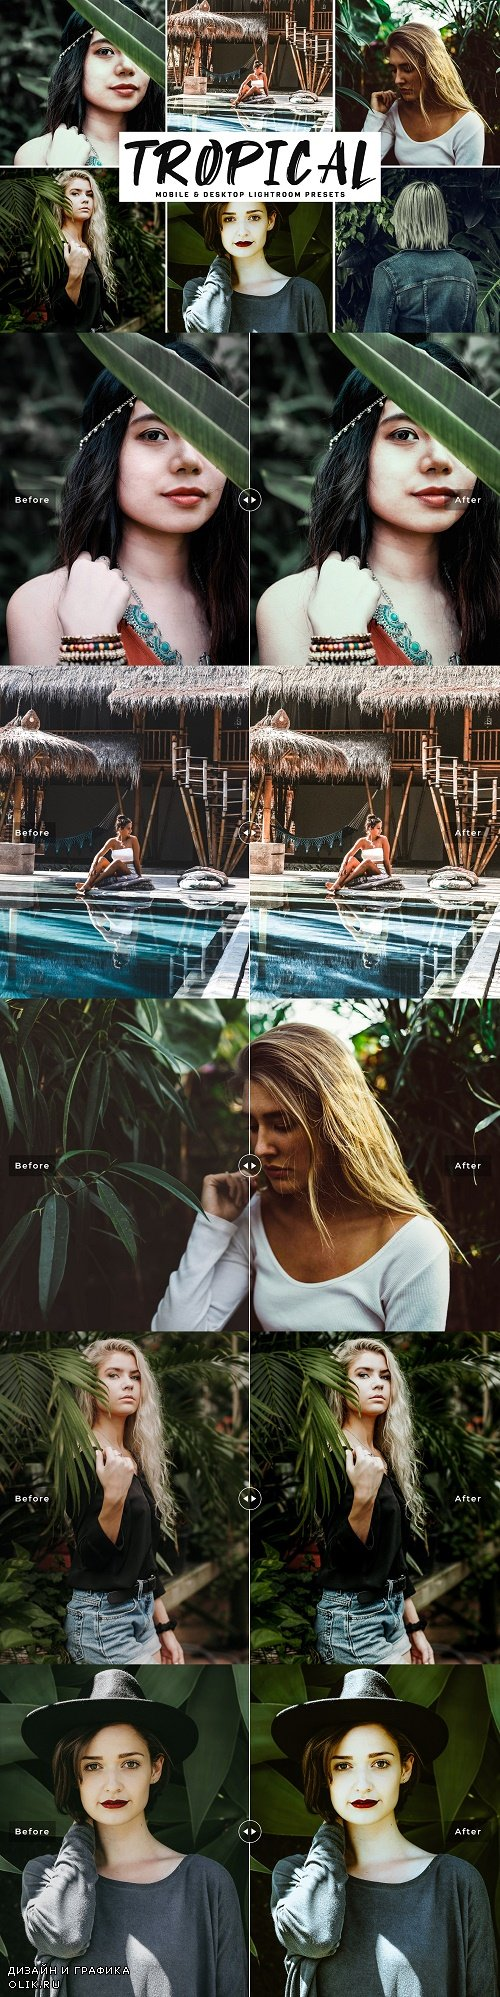 Tropical Pro Lightroom Presets - 4055997